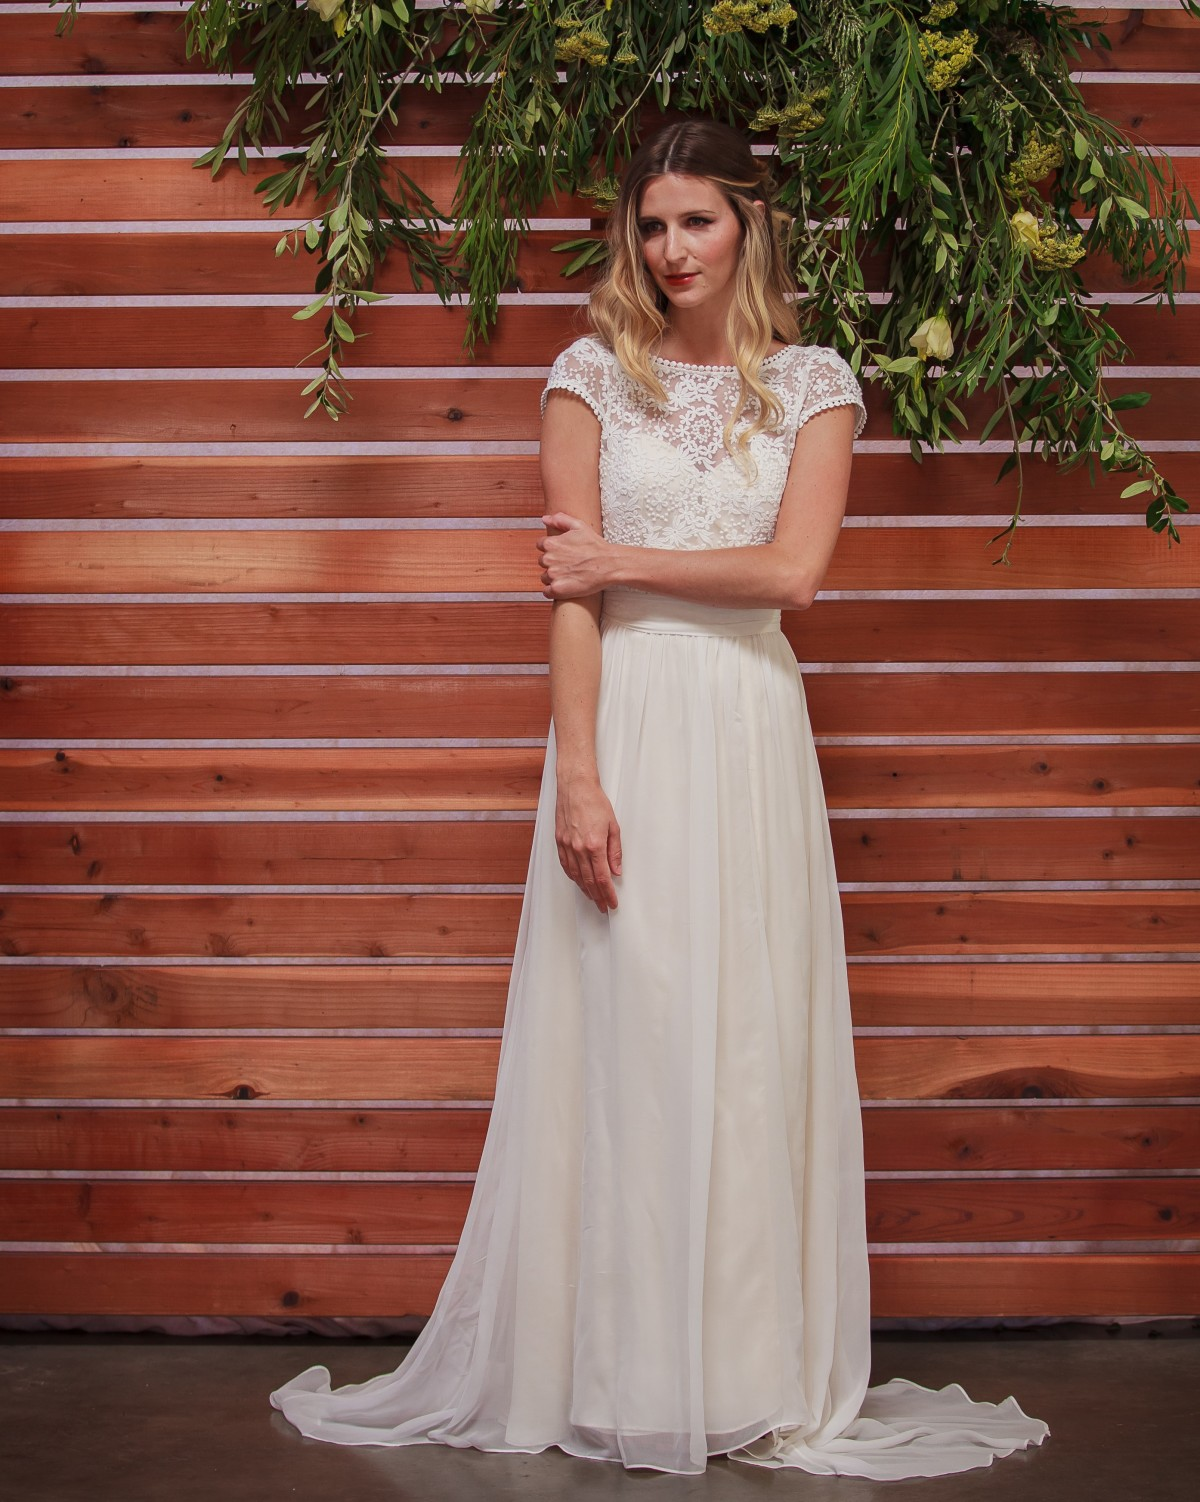 35 Inspirational Ideas Of Simple Wedding Dresses The Best Wedding